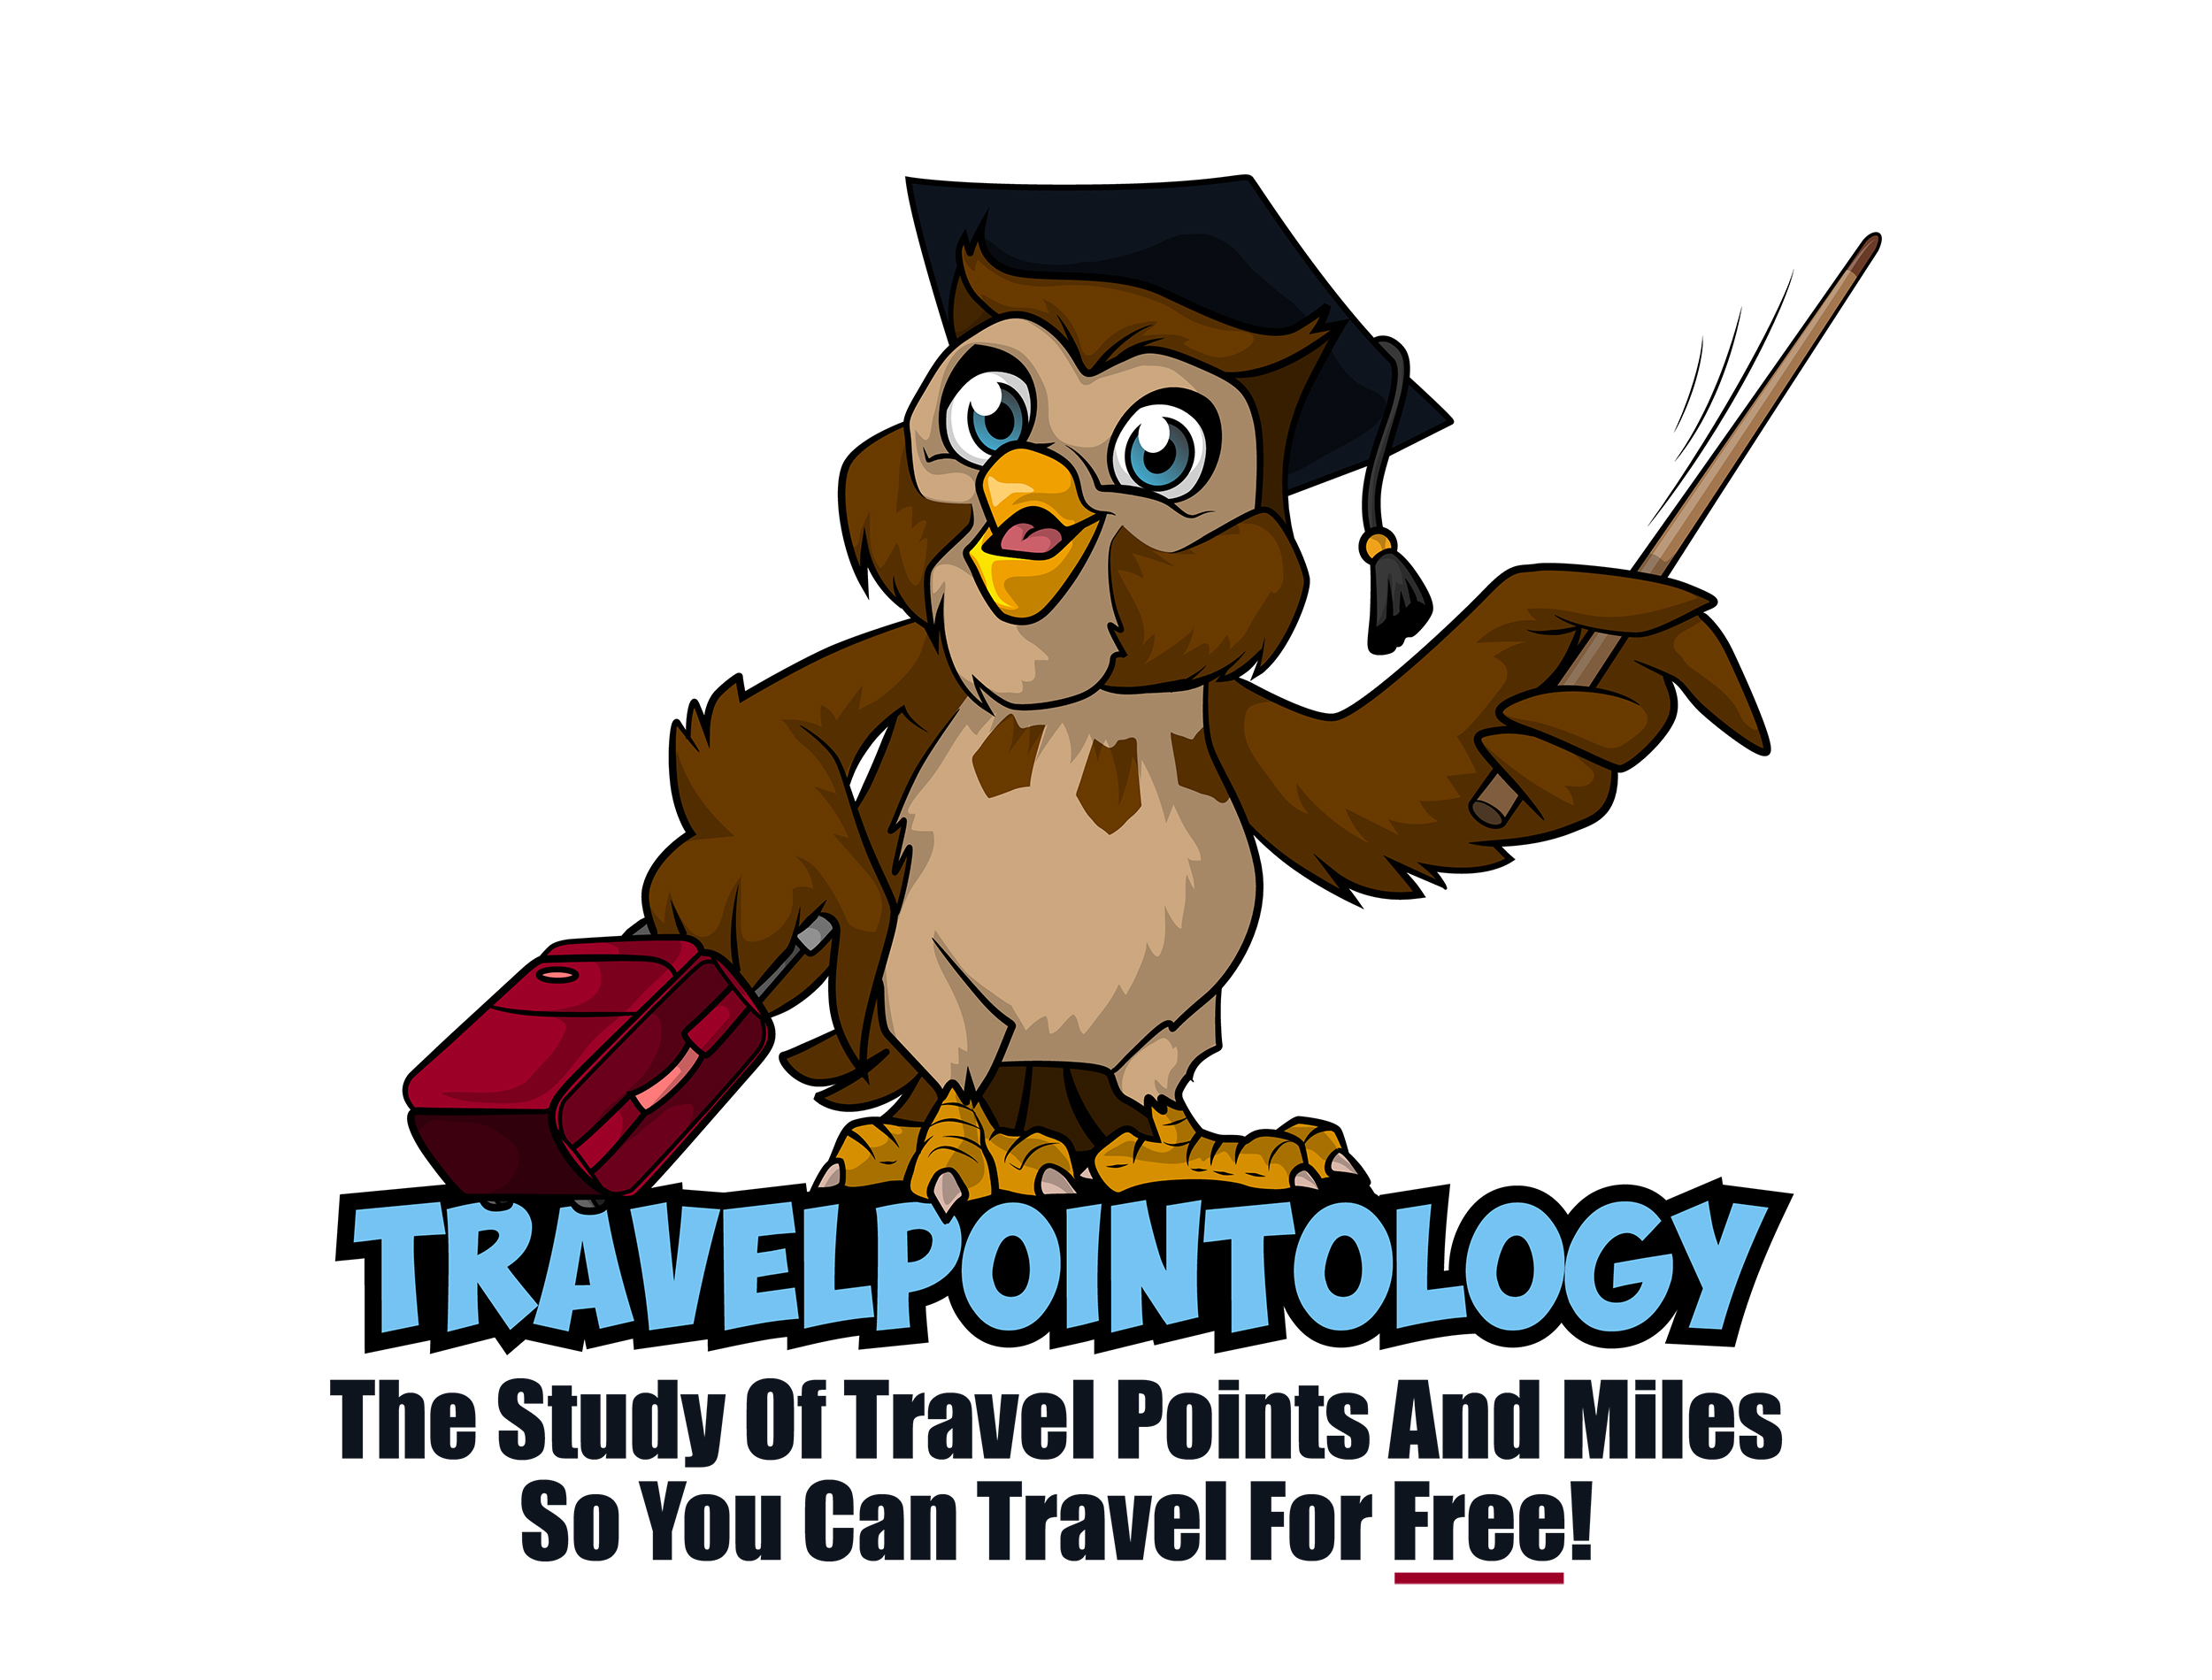 Travel Is Free! Why Not Give The Gift Of Free Travel For The Holidays?